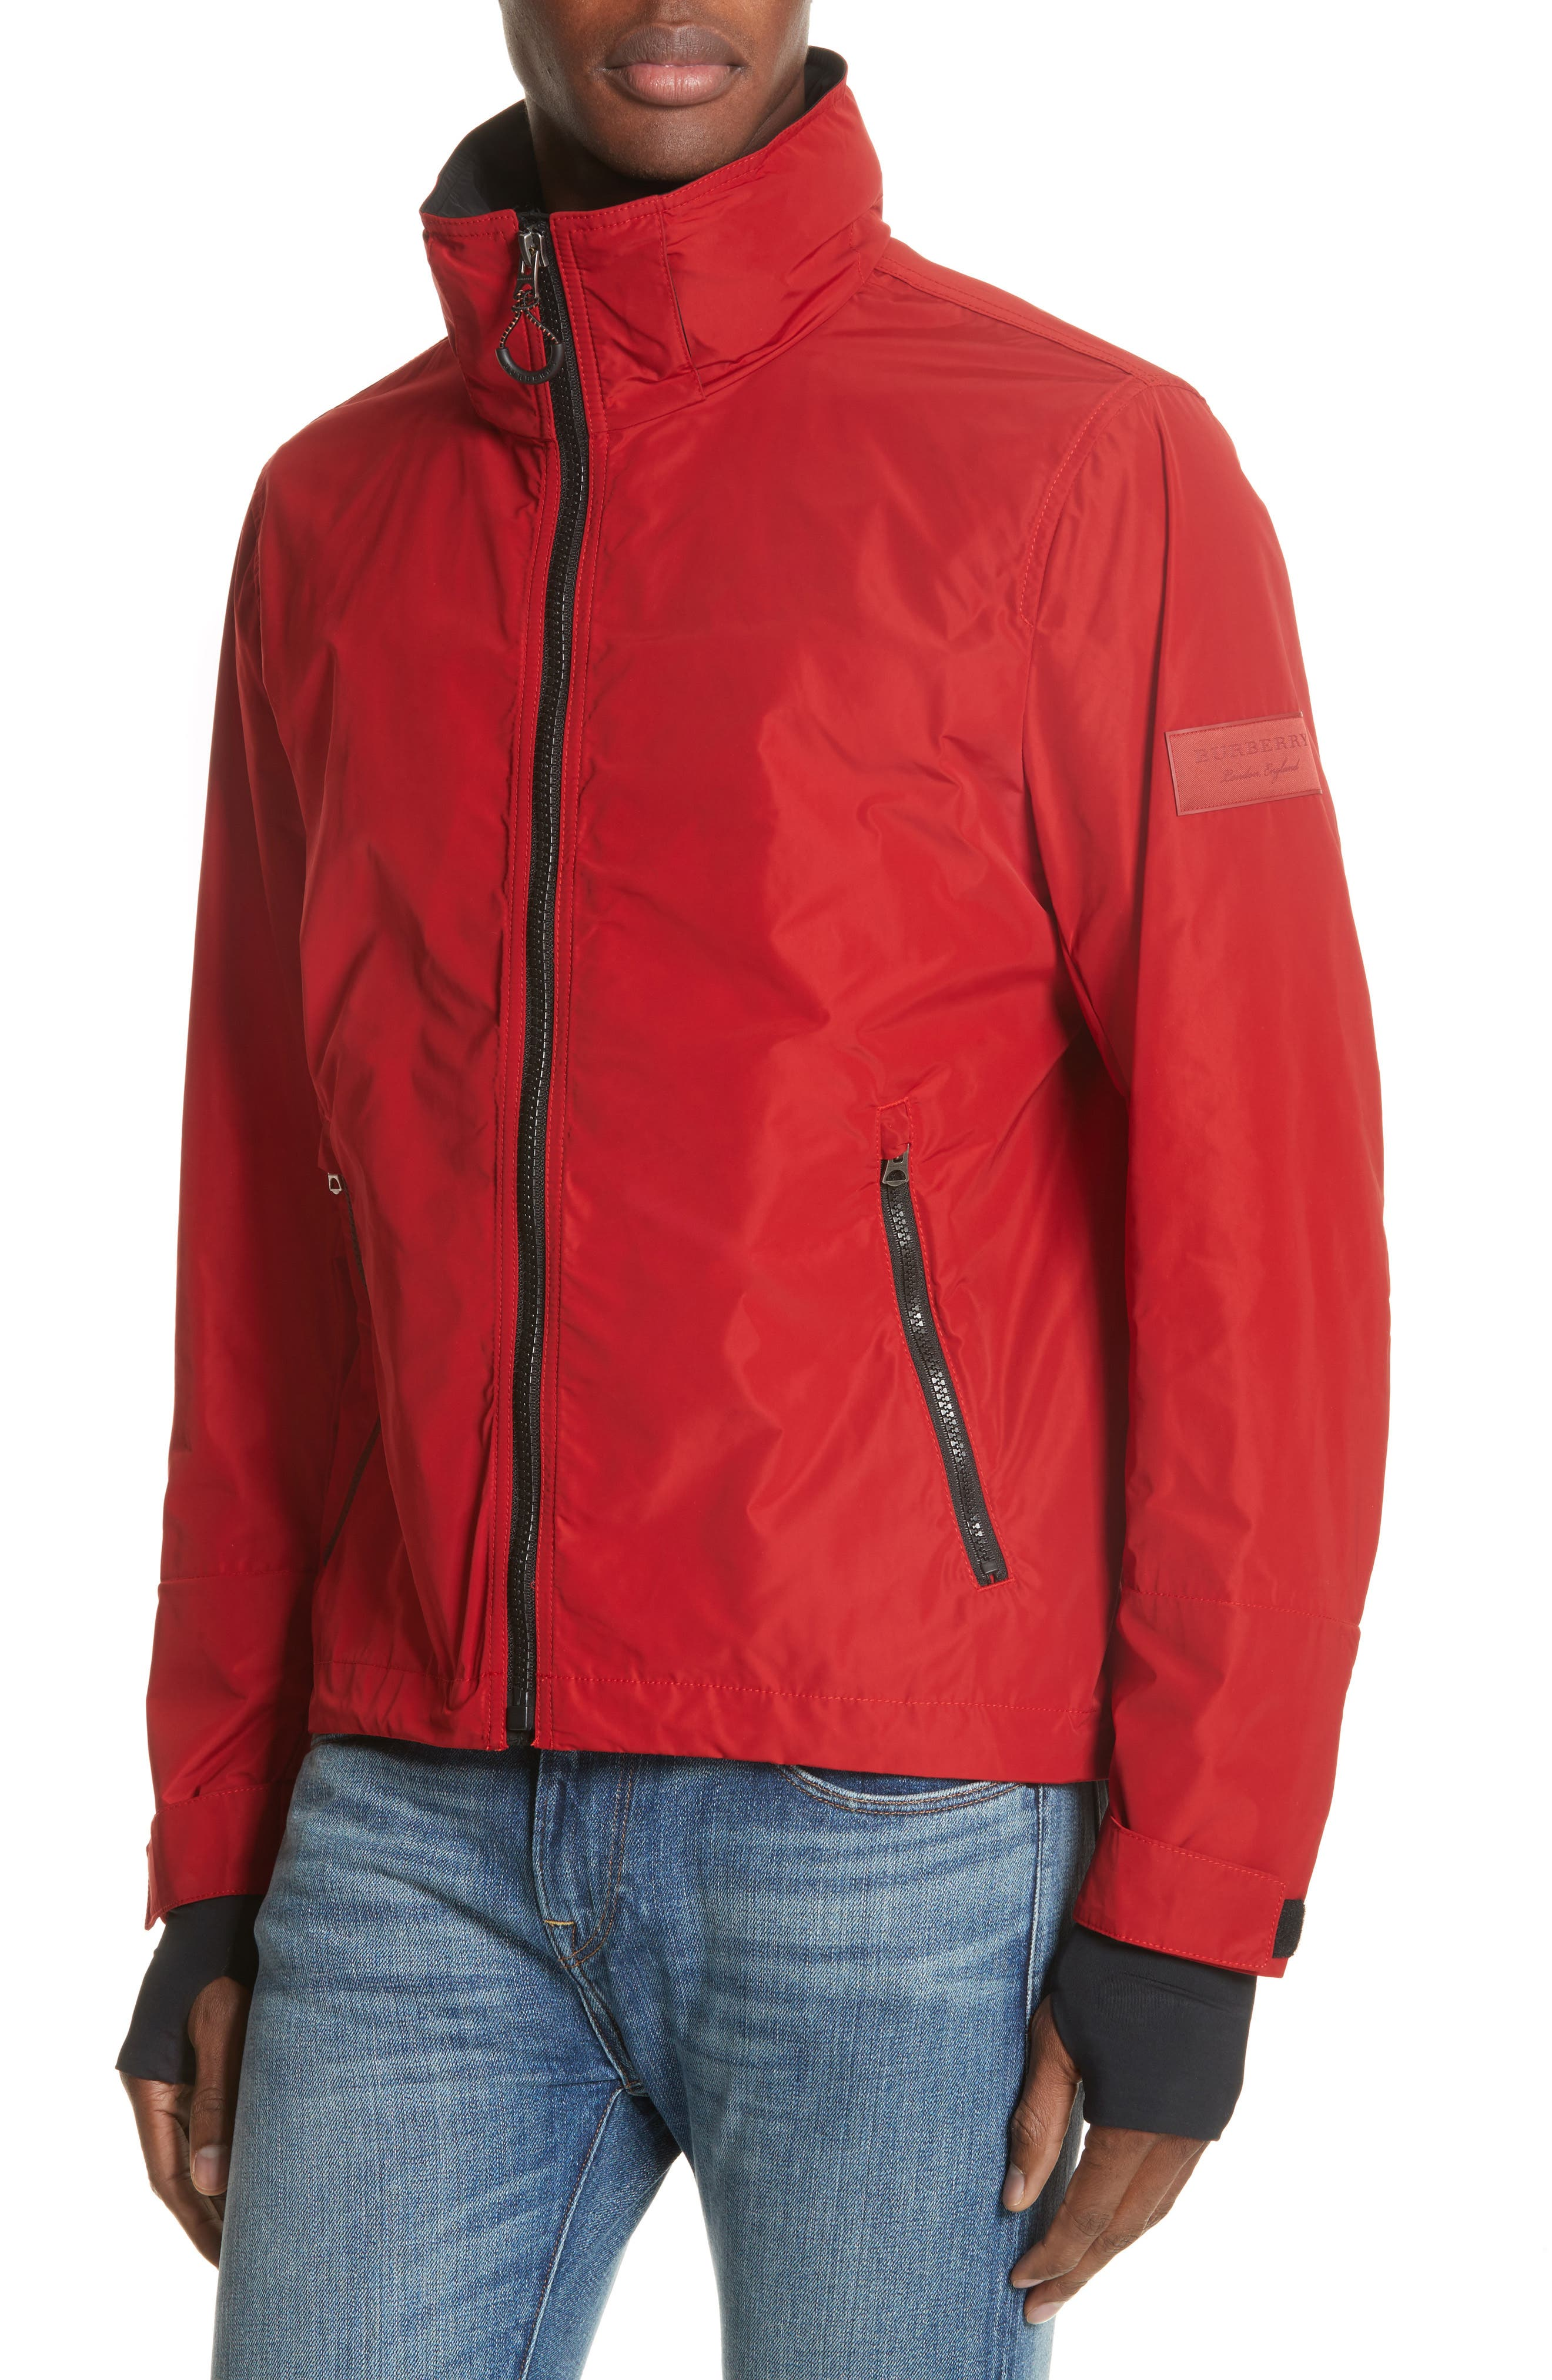 Headson Standard Fit Jacket,                             Alternate thumbnail 4, color,